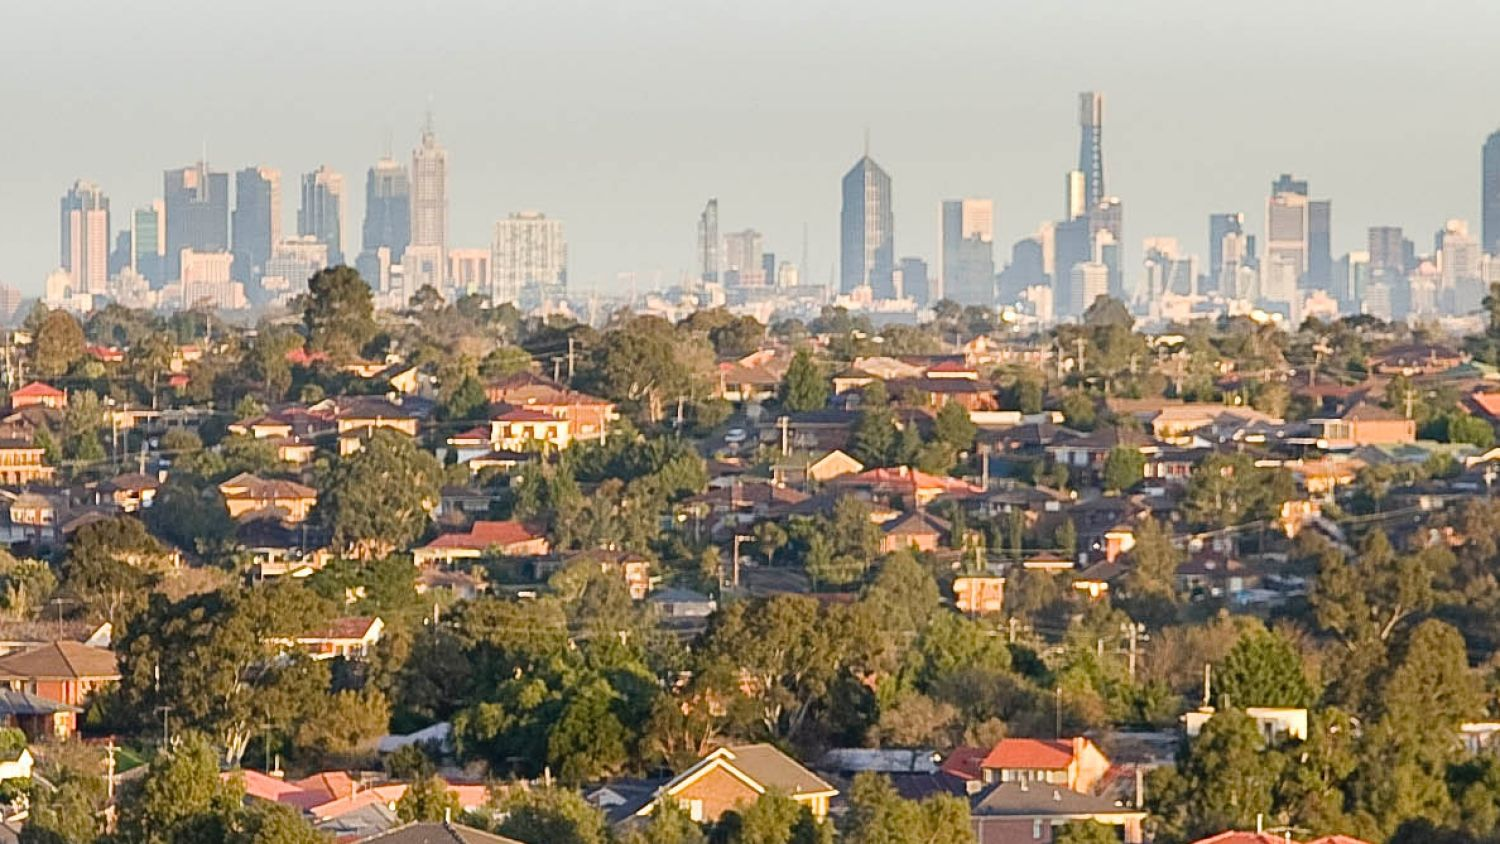 Melbourne to have $1 million median house price by end of 2018, expert predicts